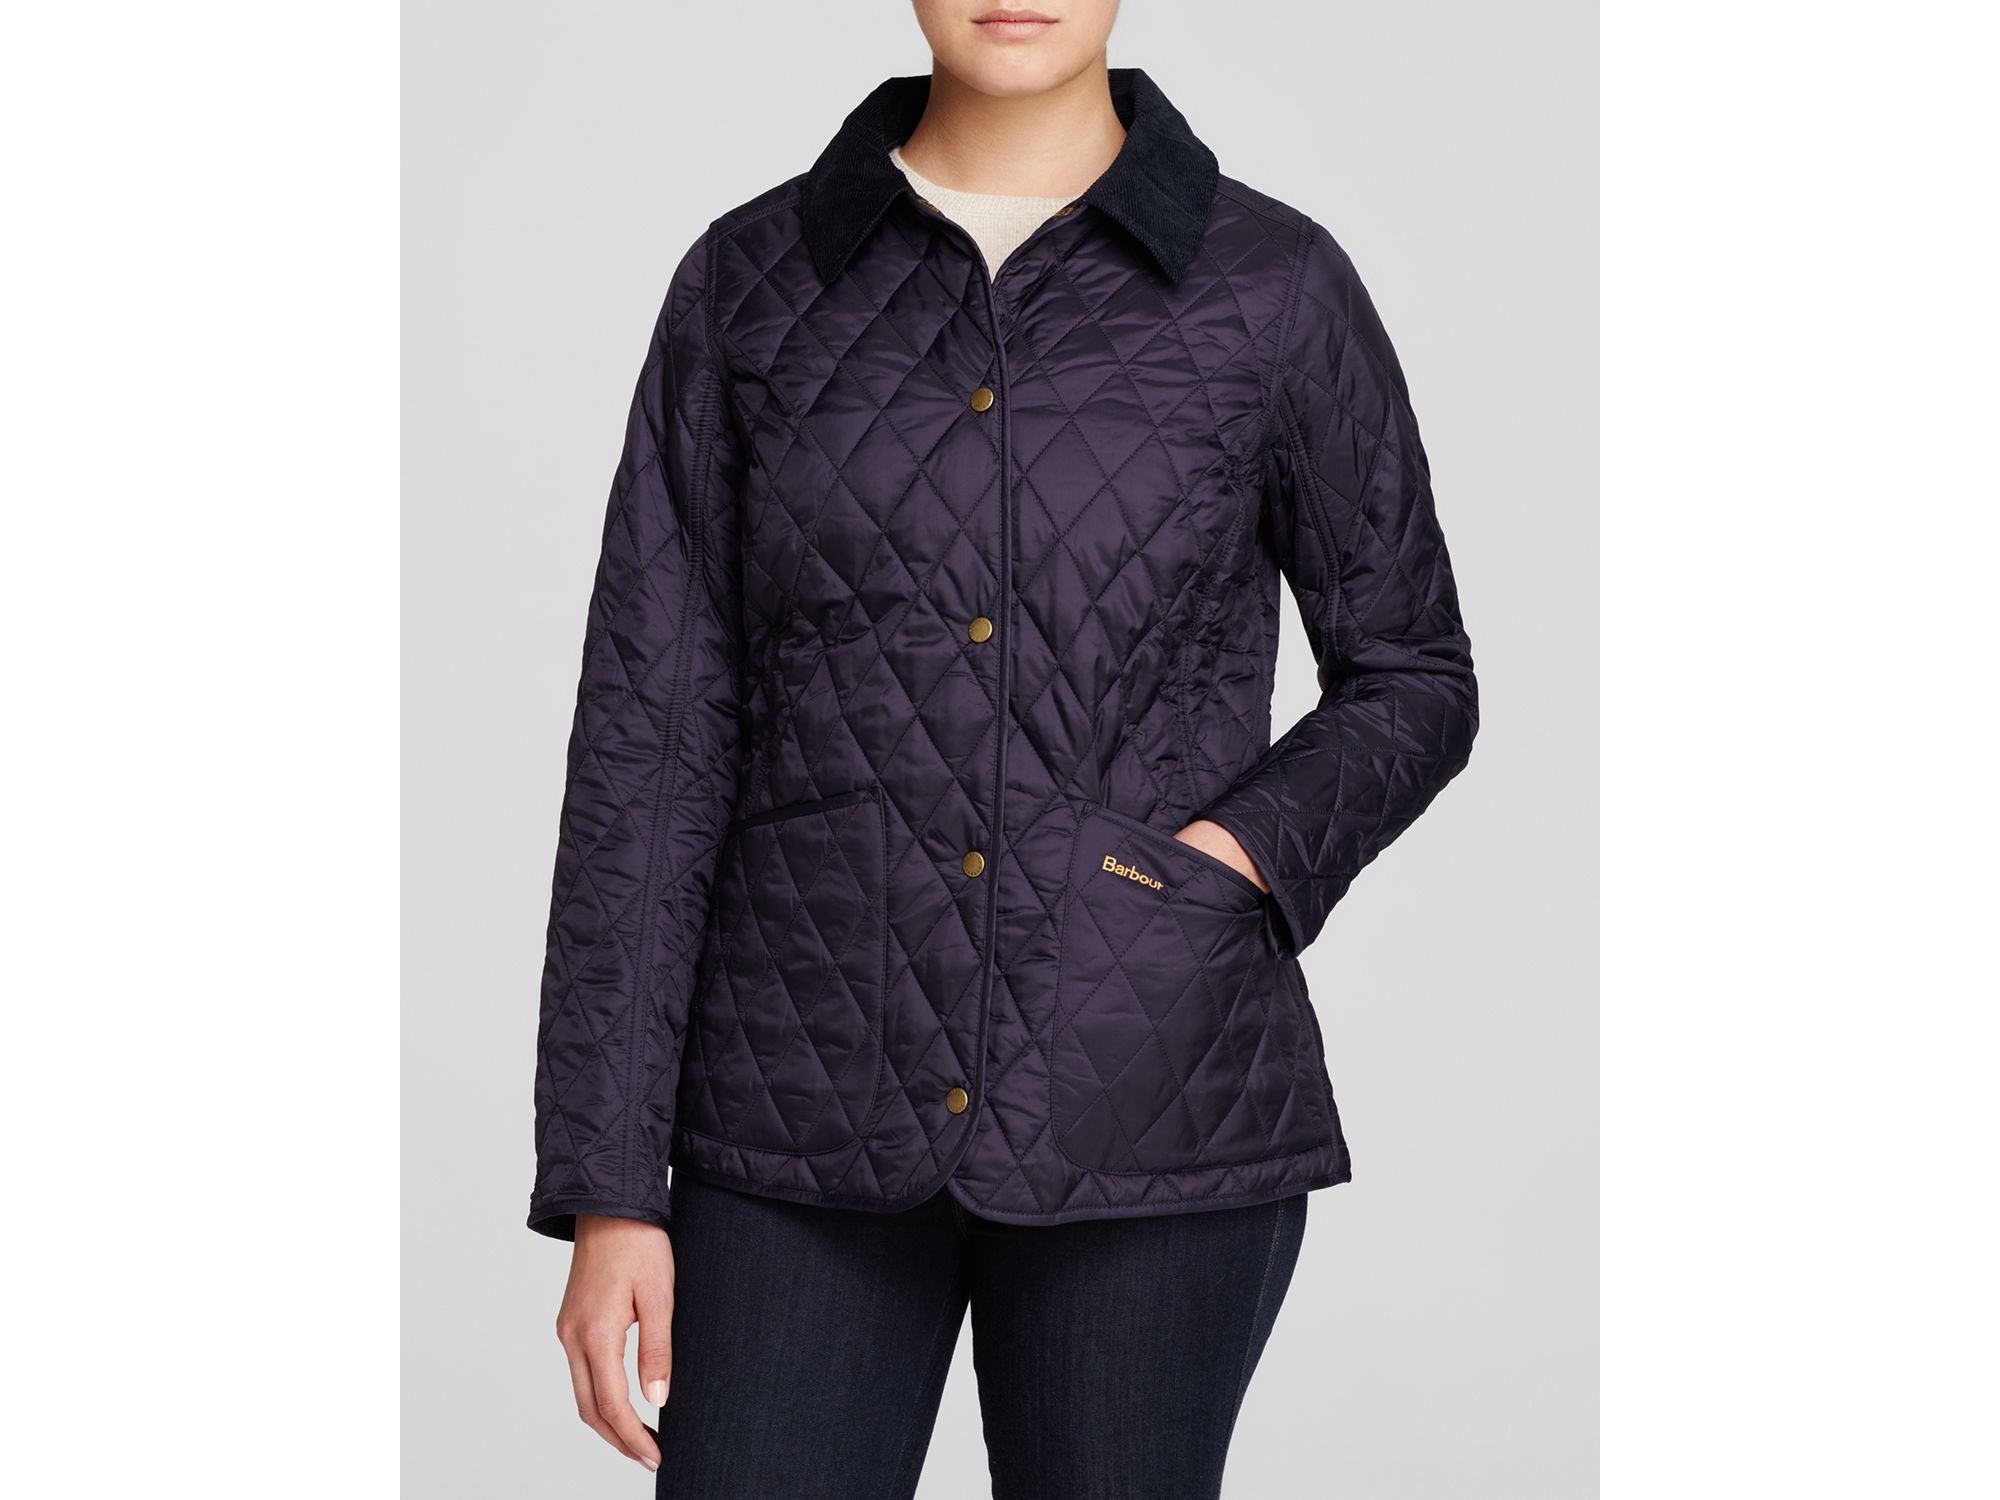 Barbour quilted jacket womens clothing